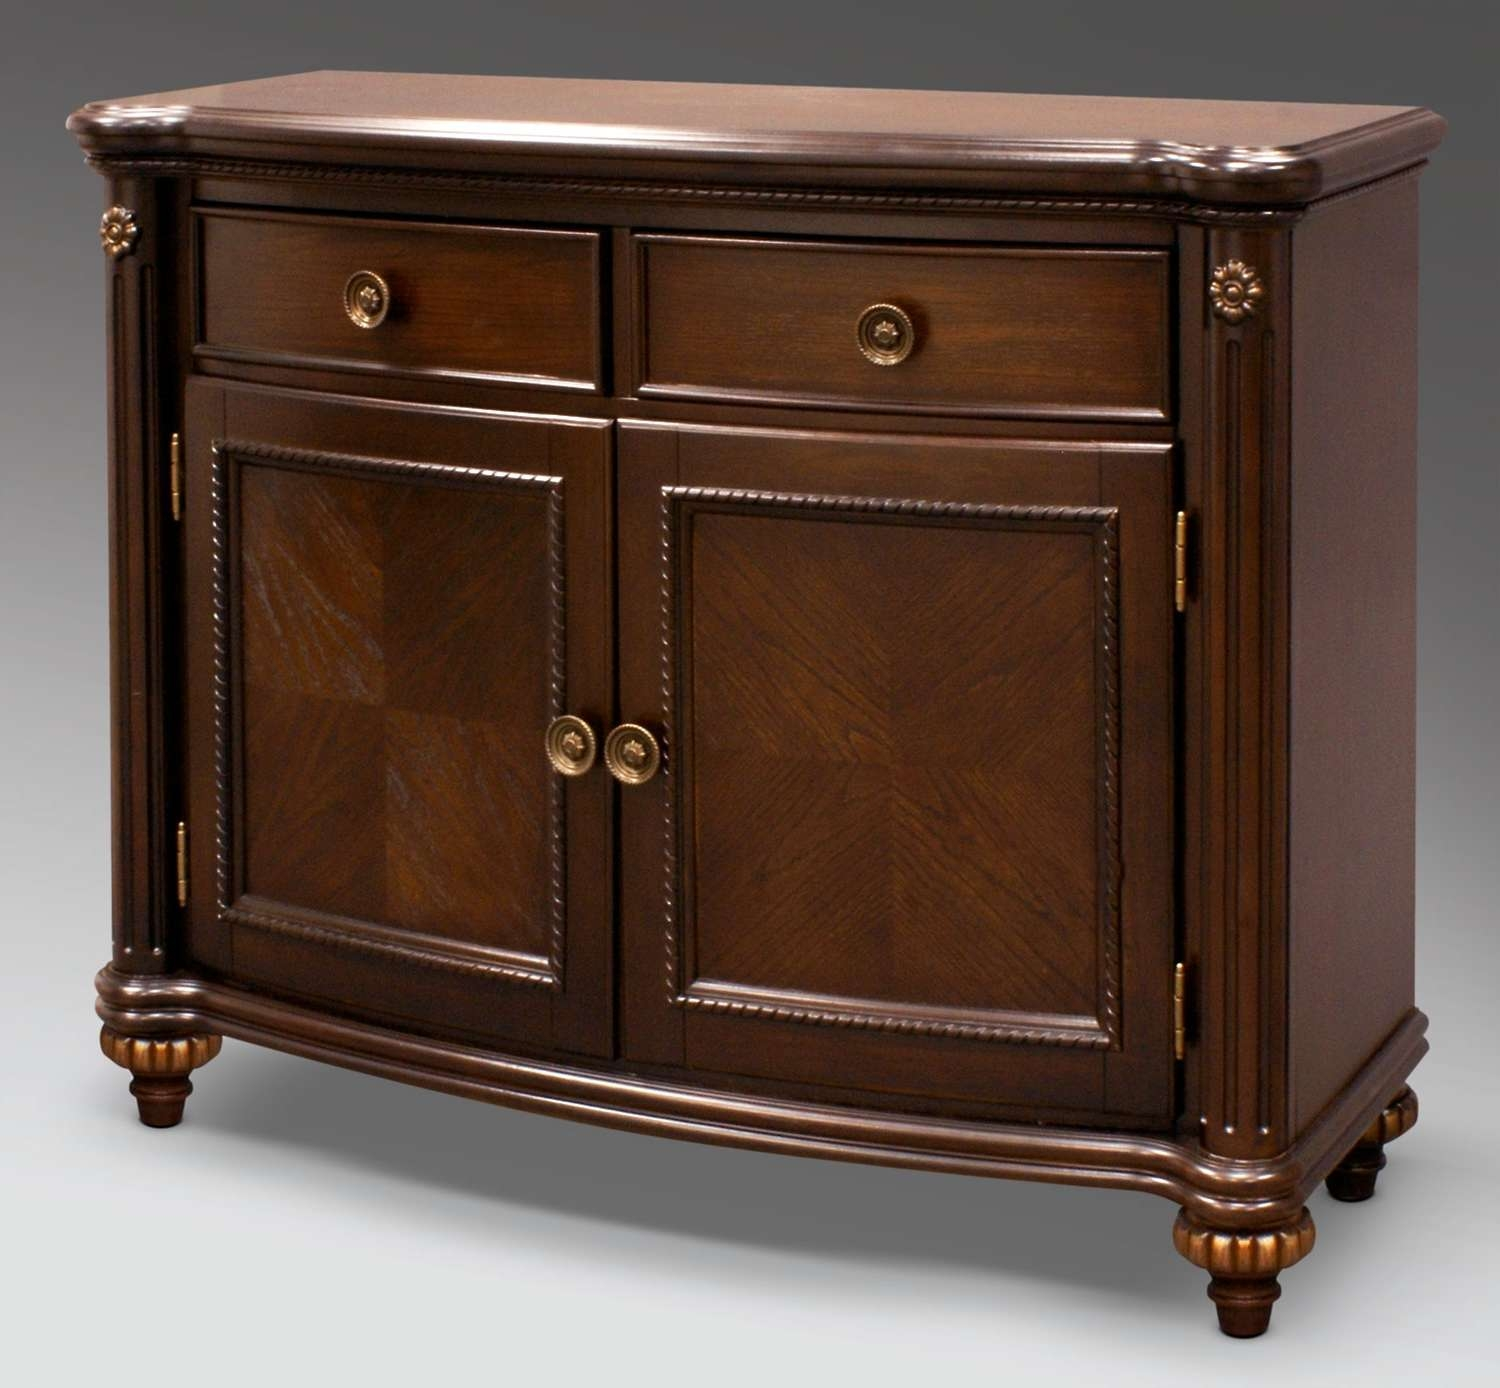 Dining Room Servers Buffet Furniture Pictures Cabinet Trends And Within Sideboards Cabinets (View 6 of 20)